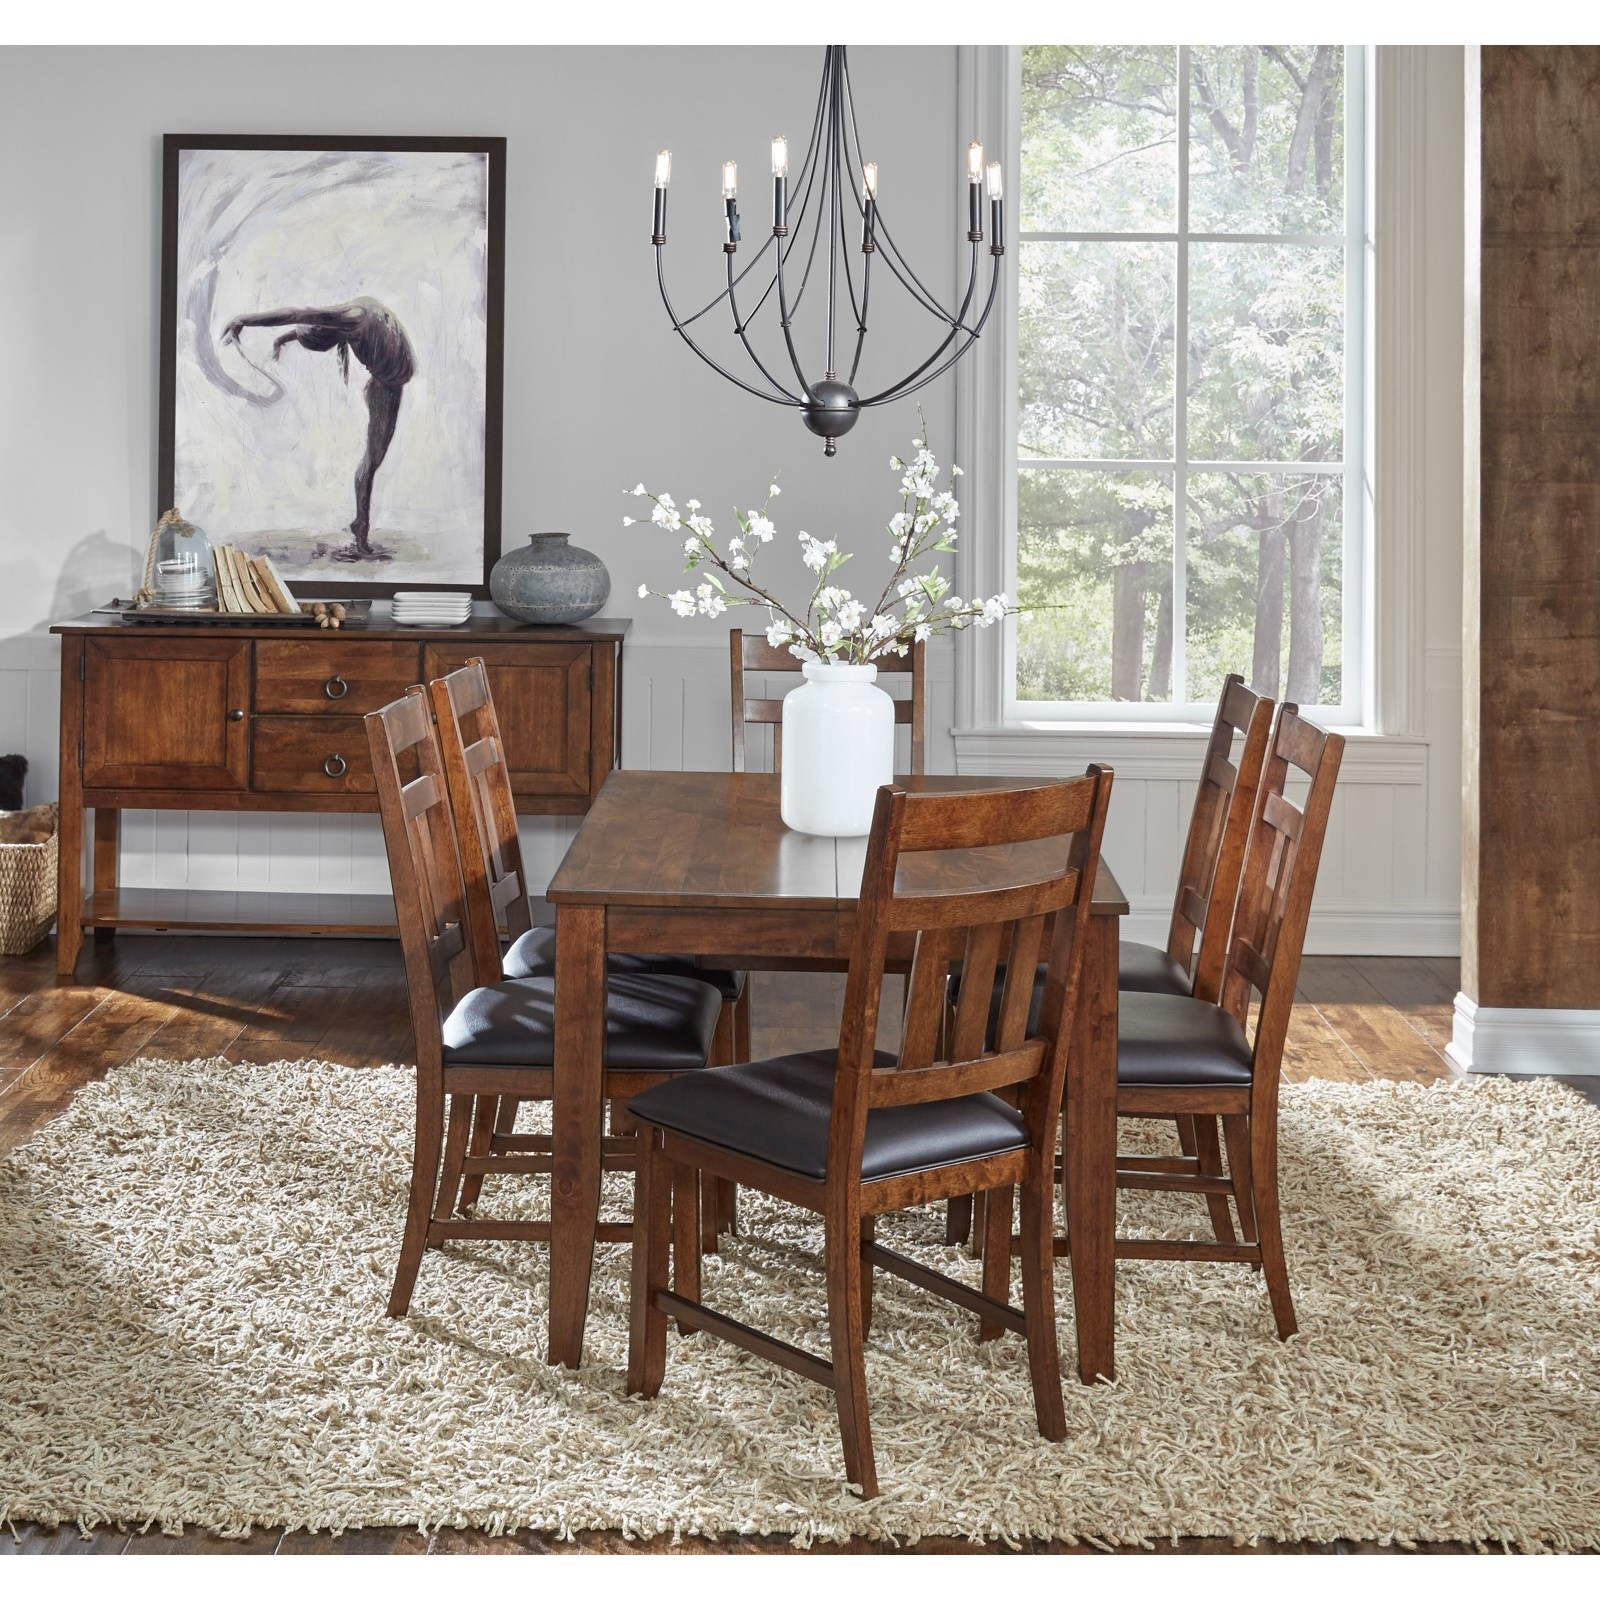 AAmerica Mason 7 Piece Square Butterfly Table And Chair Dining Set